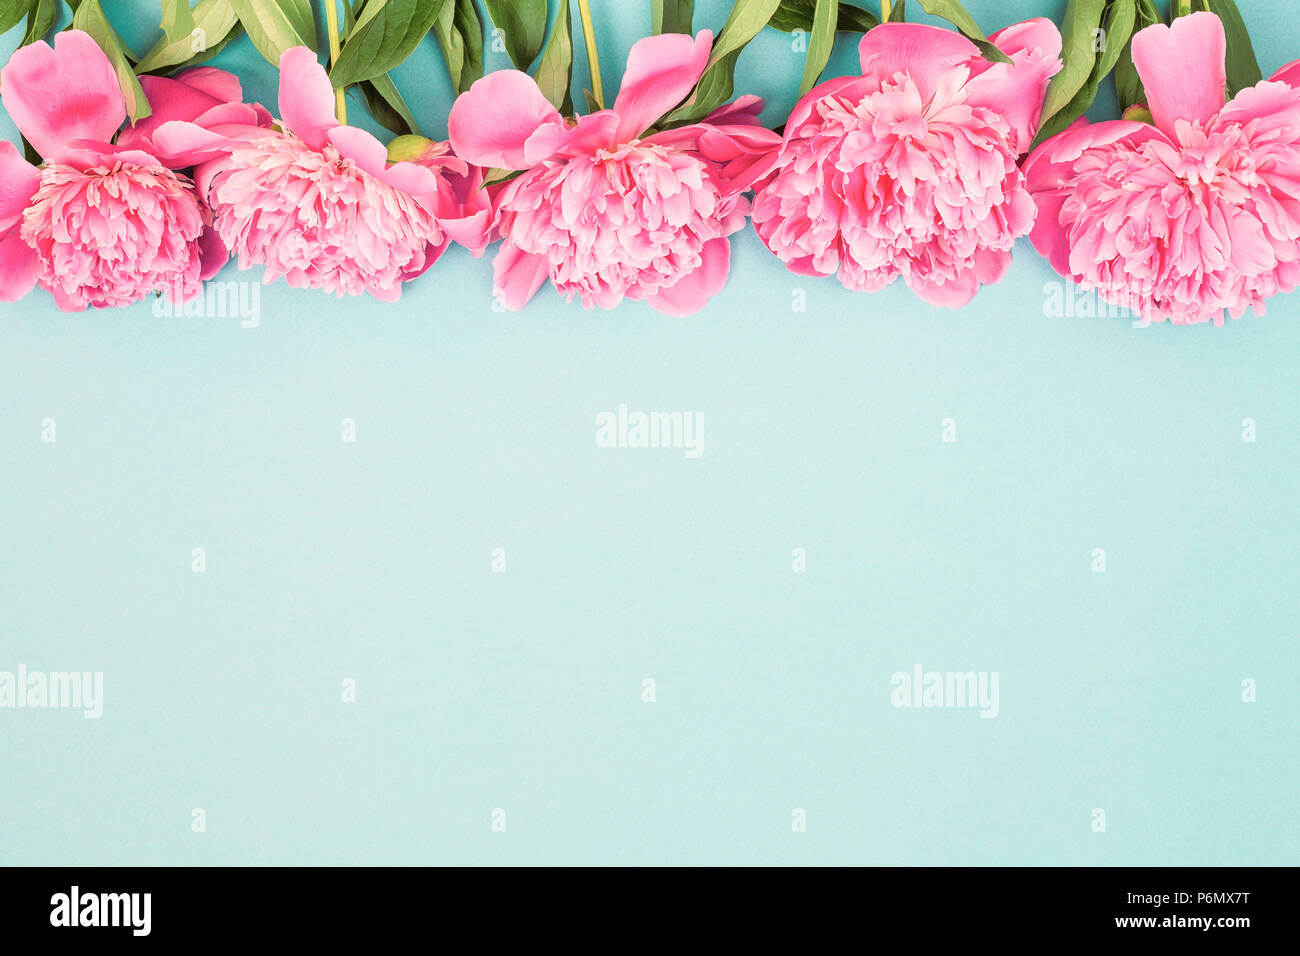 Beautiful Background With Border Of Pink Peony Flowers On Blue Top